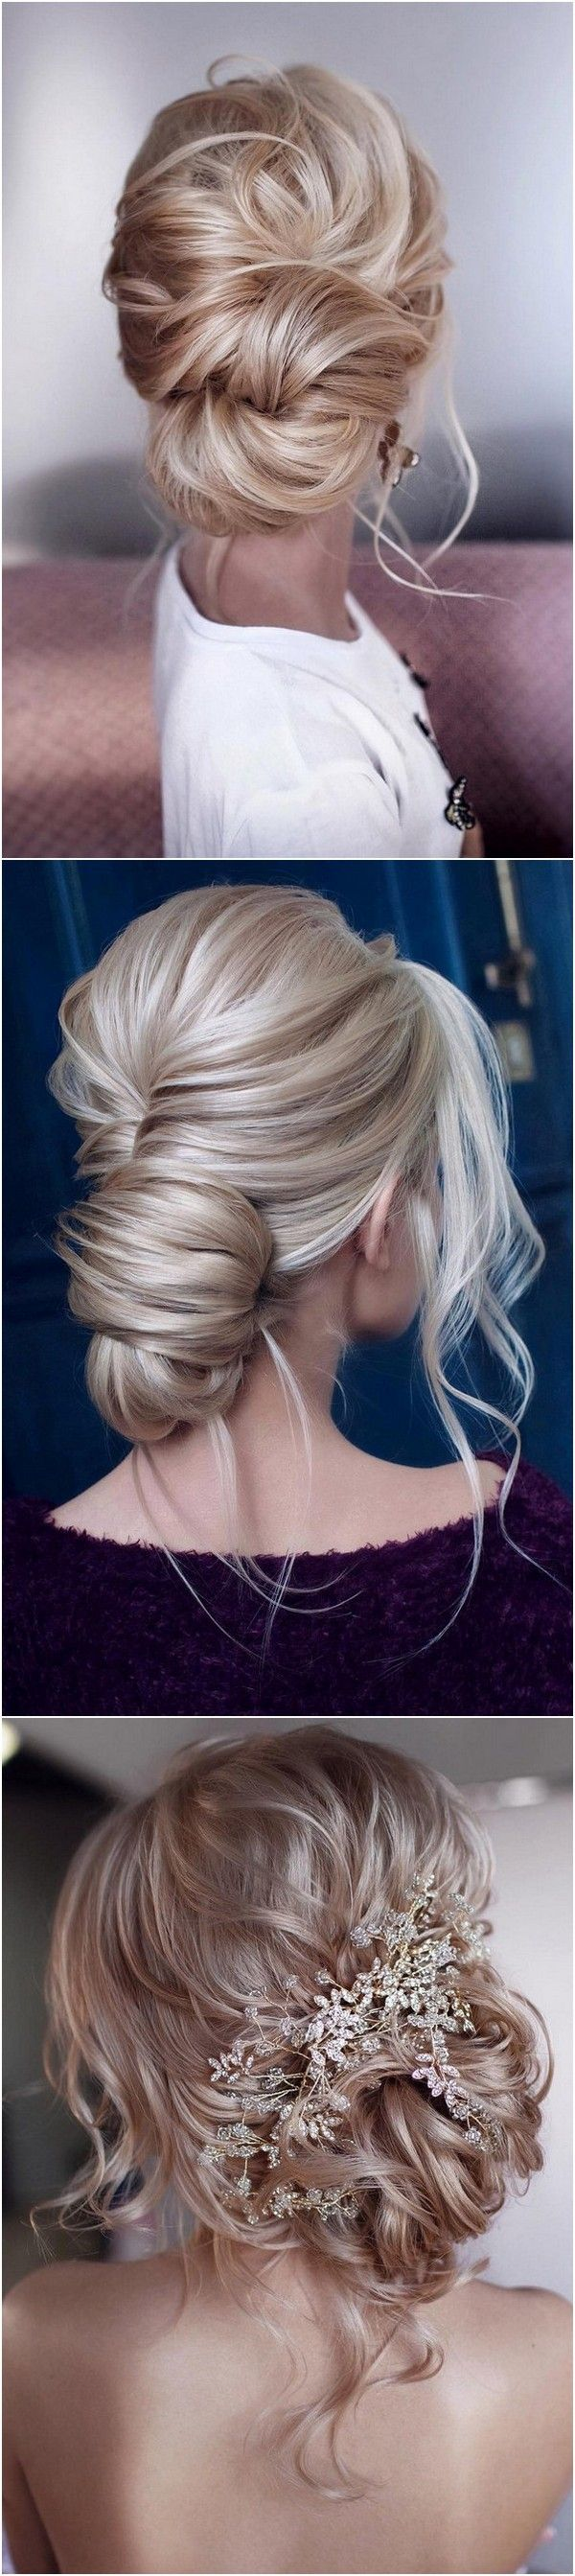 elegant low bun updo wedding hairstyles 5 #bunupdo